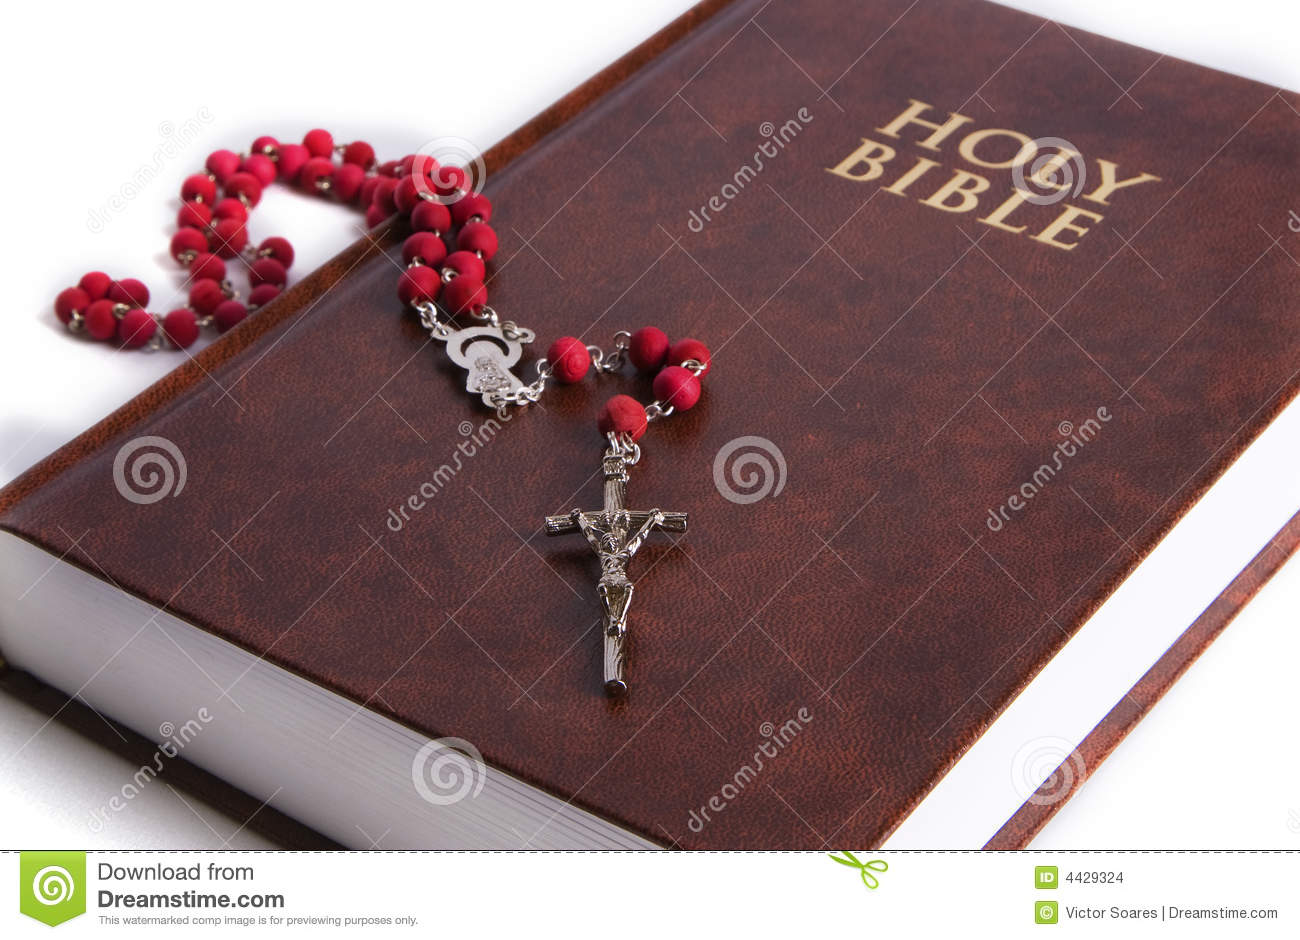 The holy bible displayed with a red rosary on it focus is on the